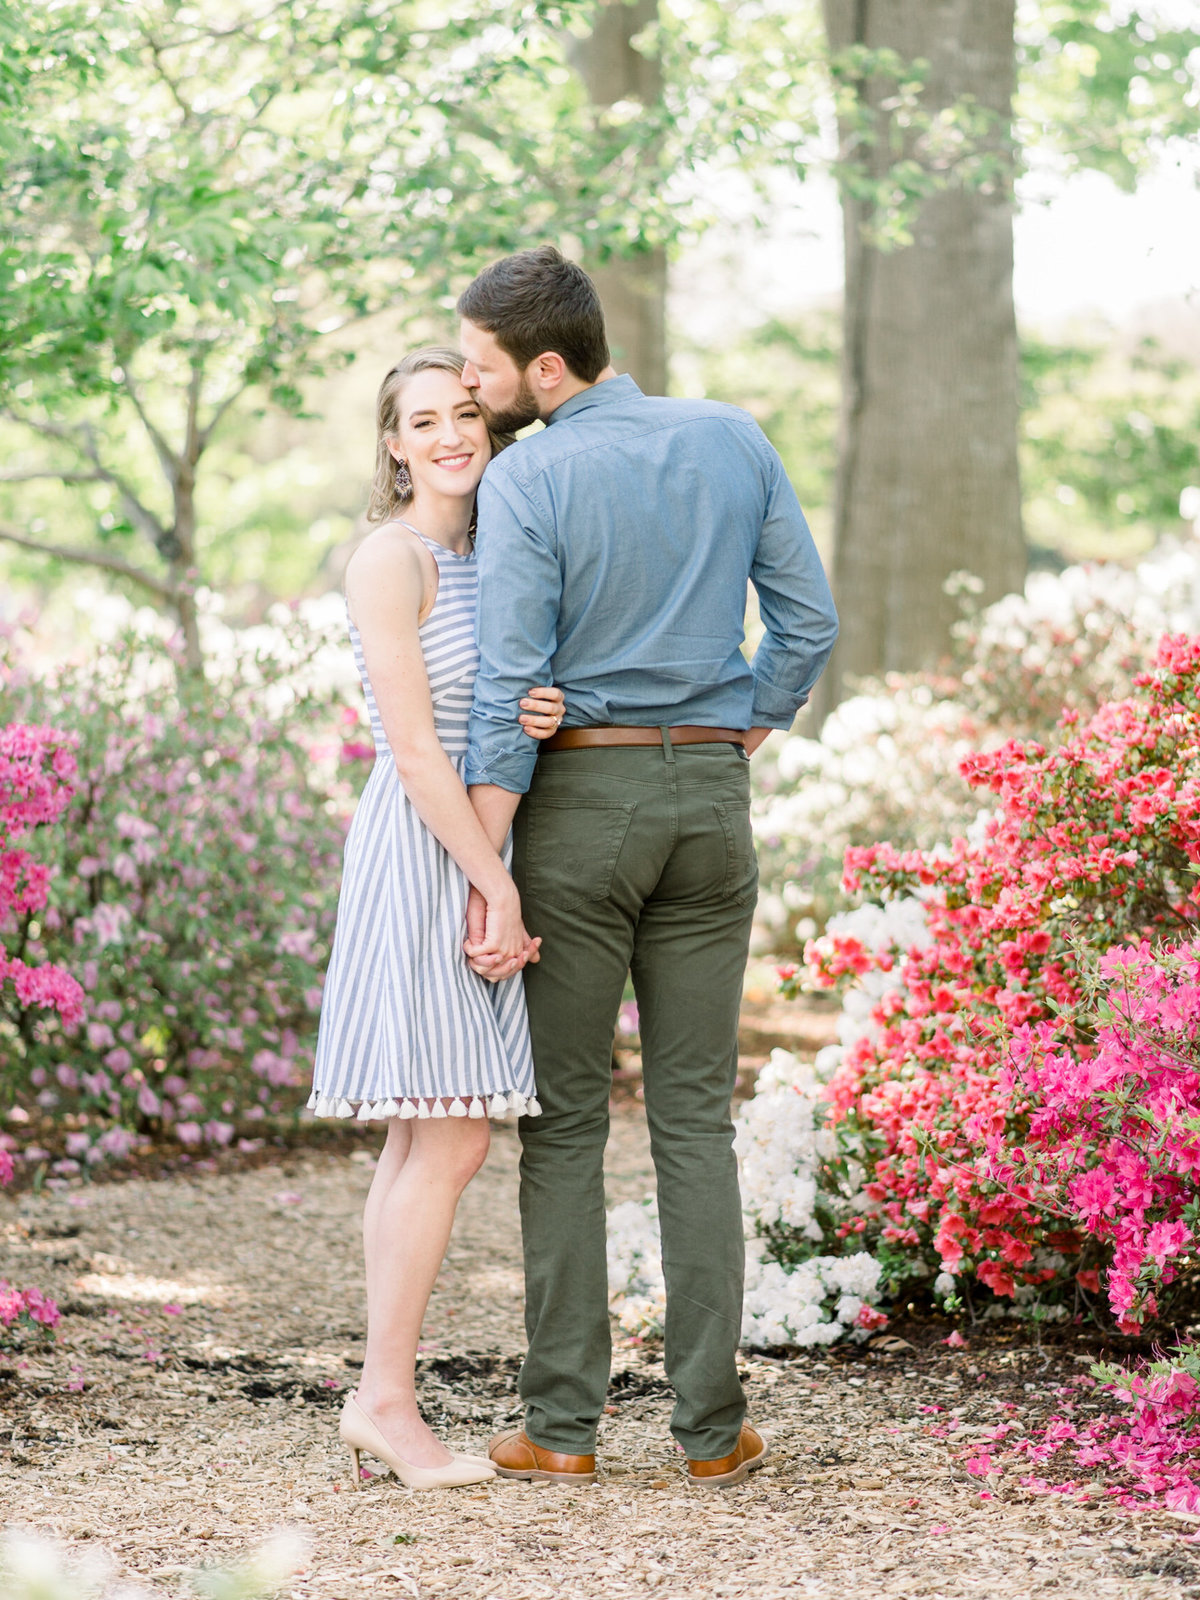 Courtney Hanson Photography - Dallas Spring Engagement Photos at Dallas Arboretum-2685